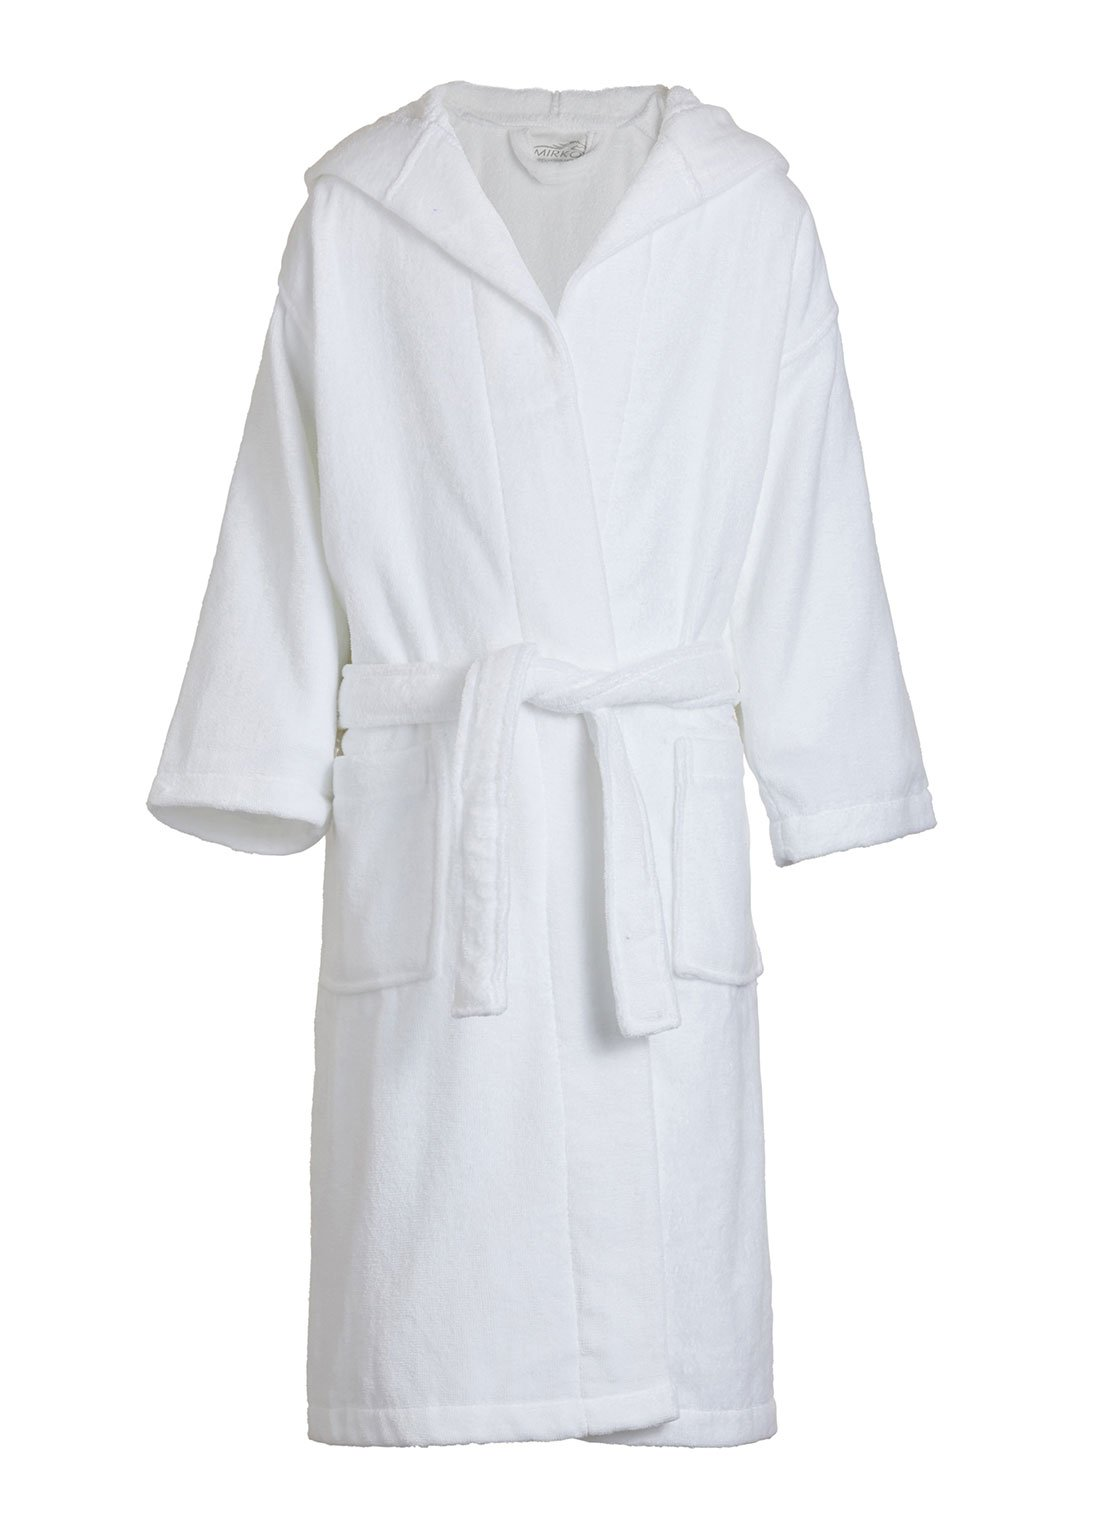 Deluxe Child and Teen Bathrobes Alternate Colors  f013c4885